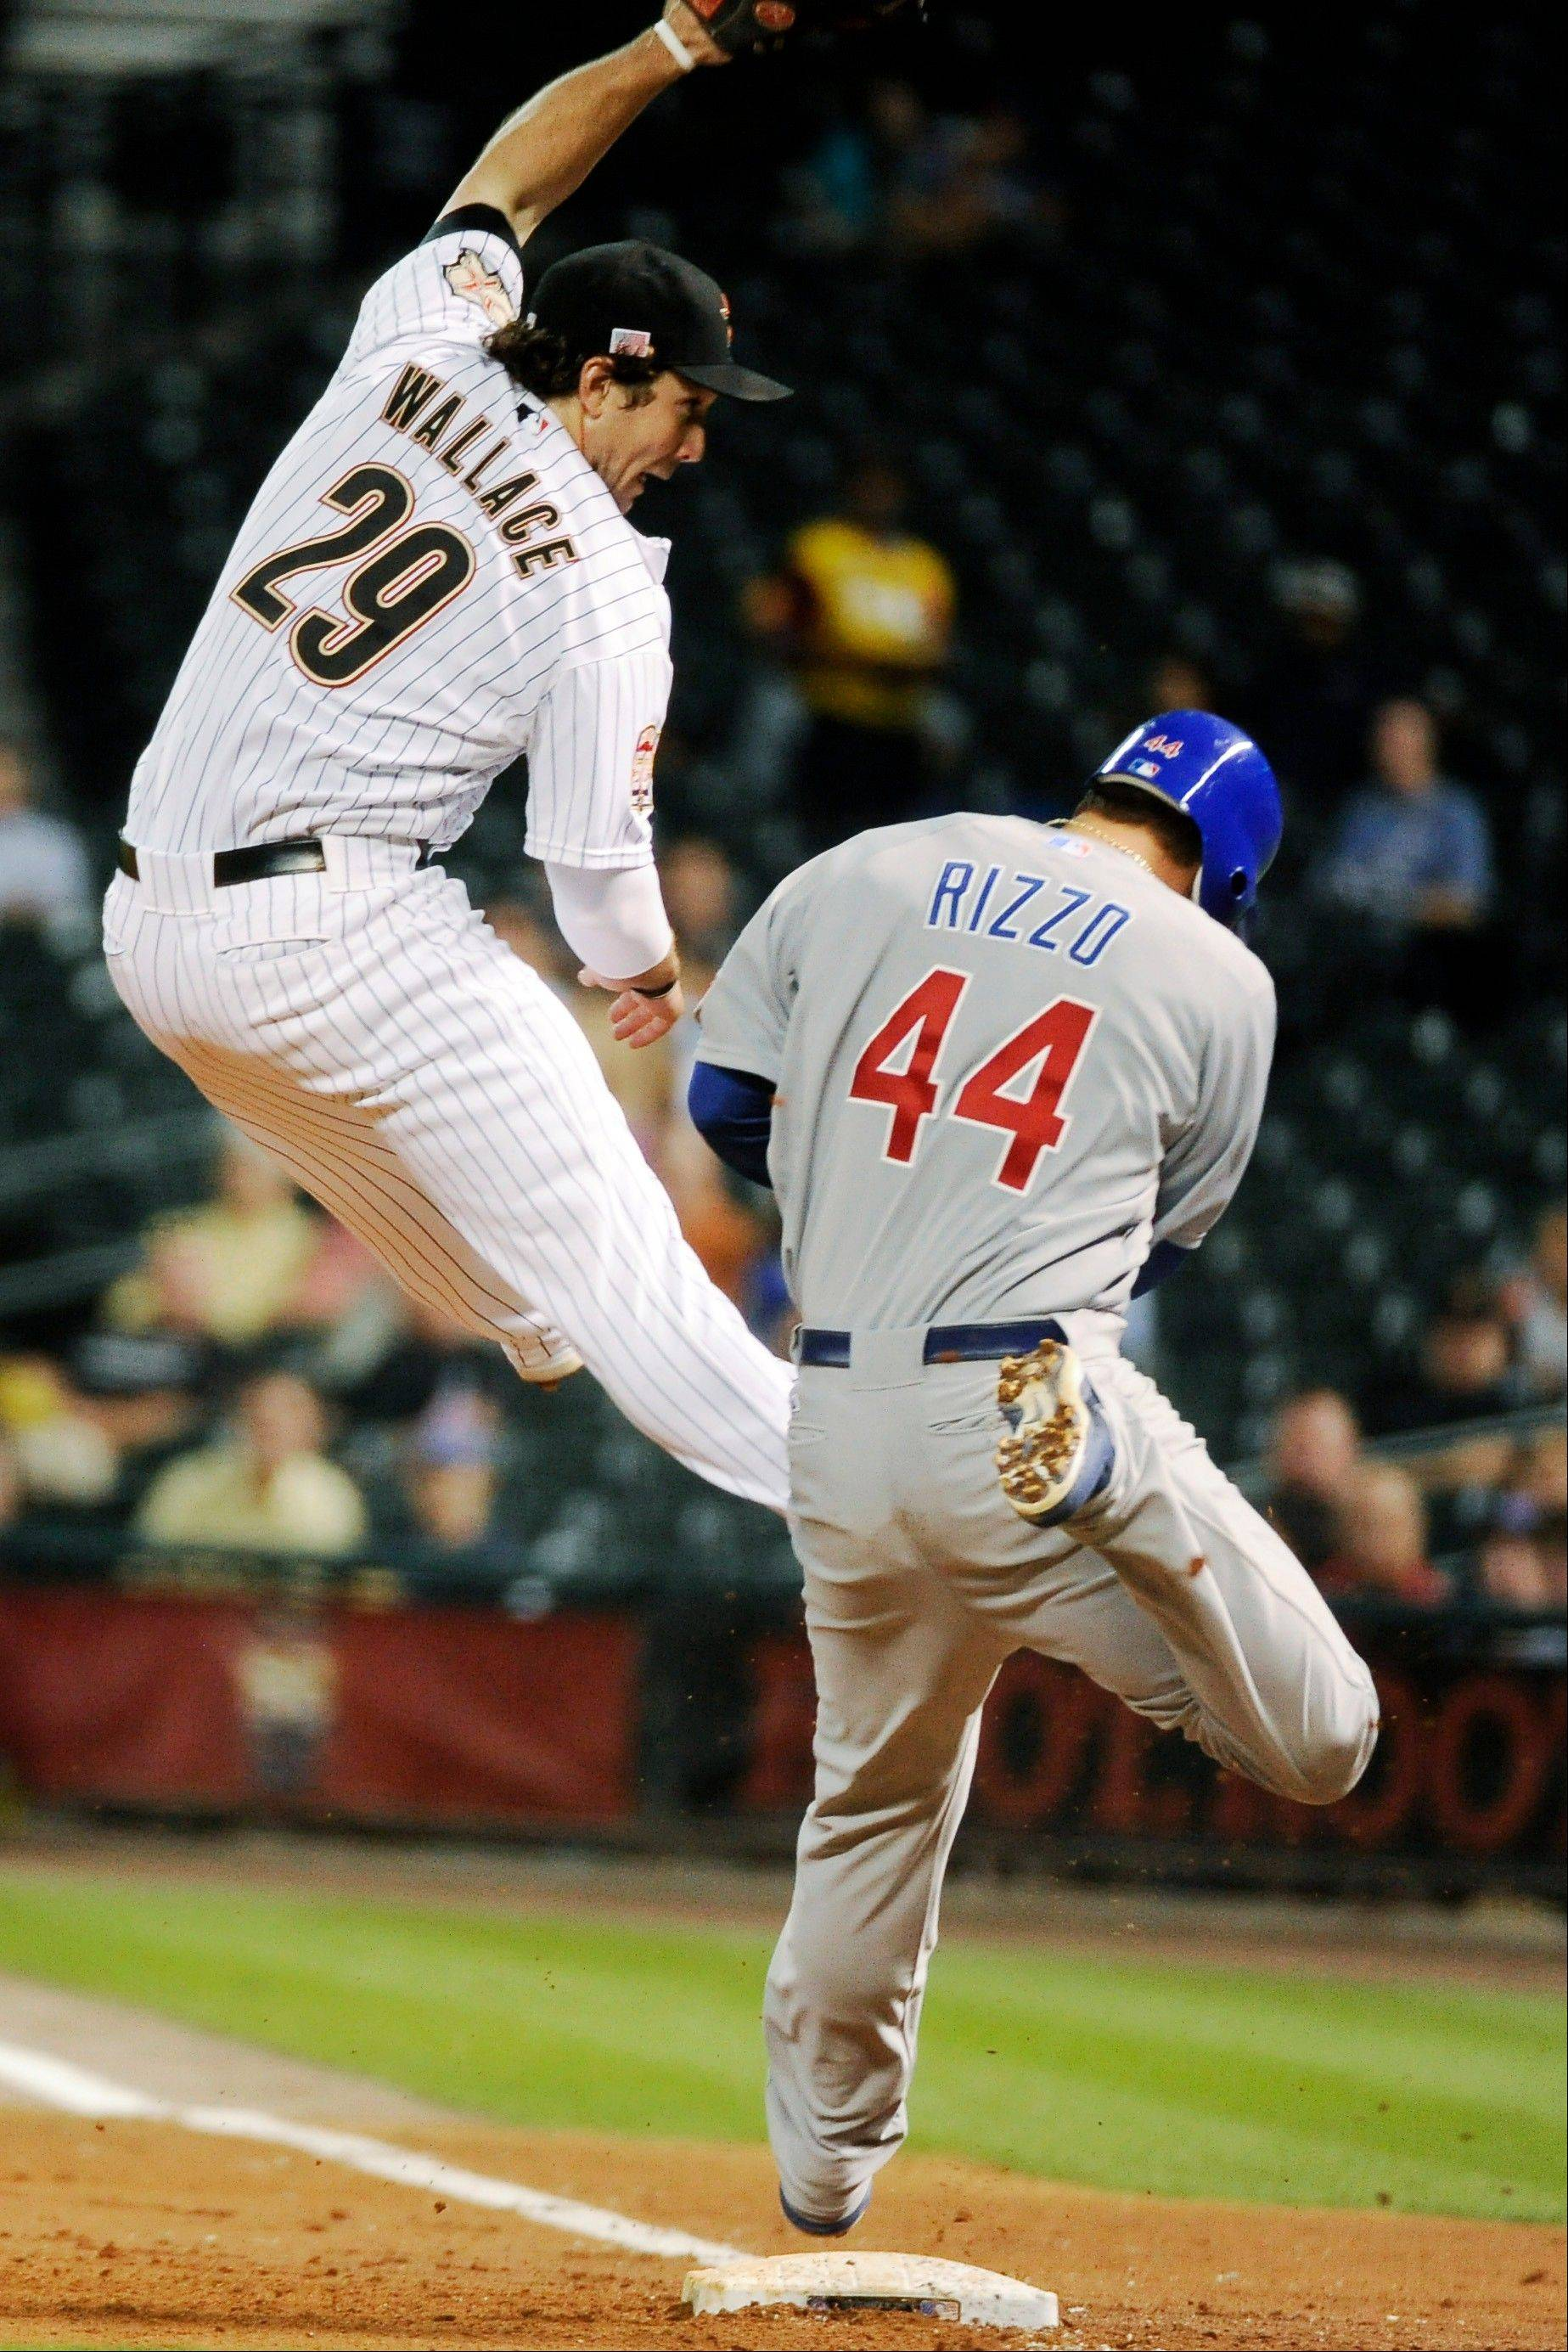 Houston Astros first baseman Brett Wallace comes down on the Cubs' Anthony Rizzo after reaching for a throw in the third inning in Houston. Rizzo went down and was helped from the field.